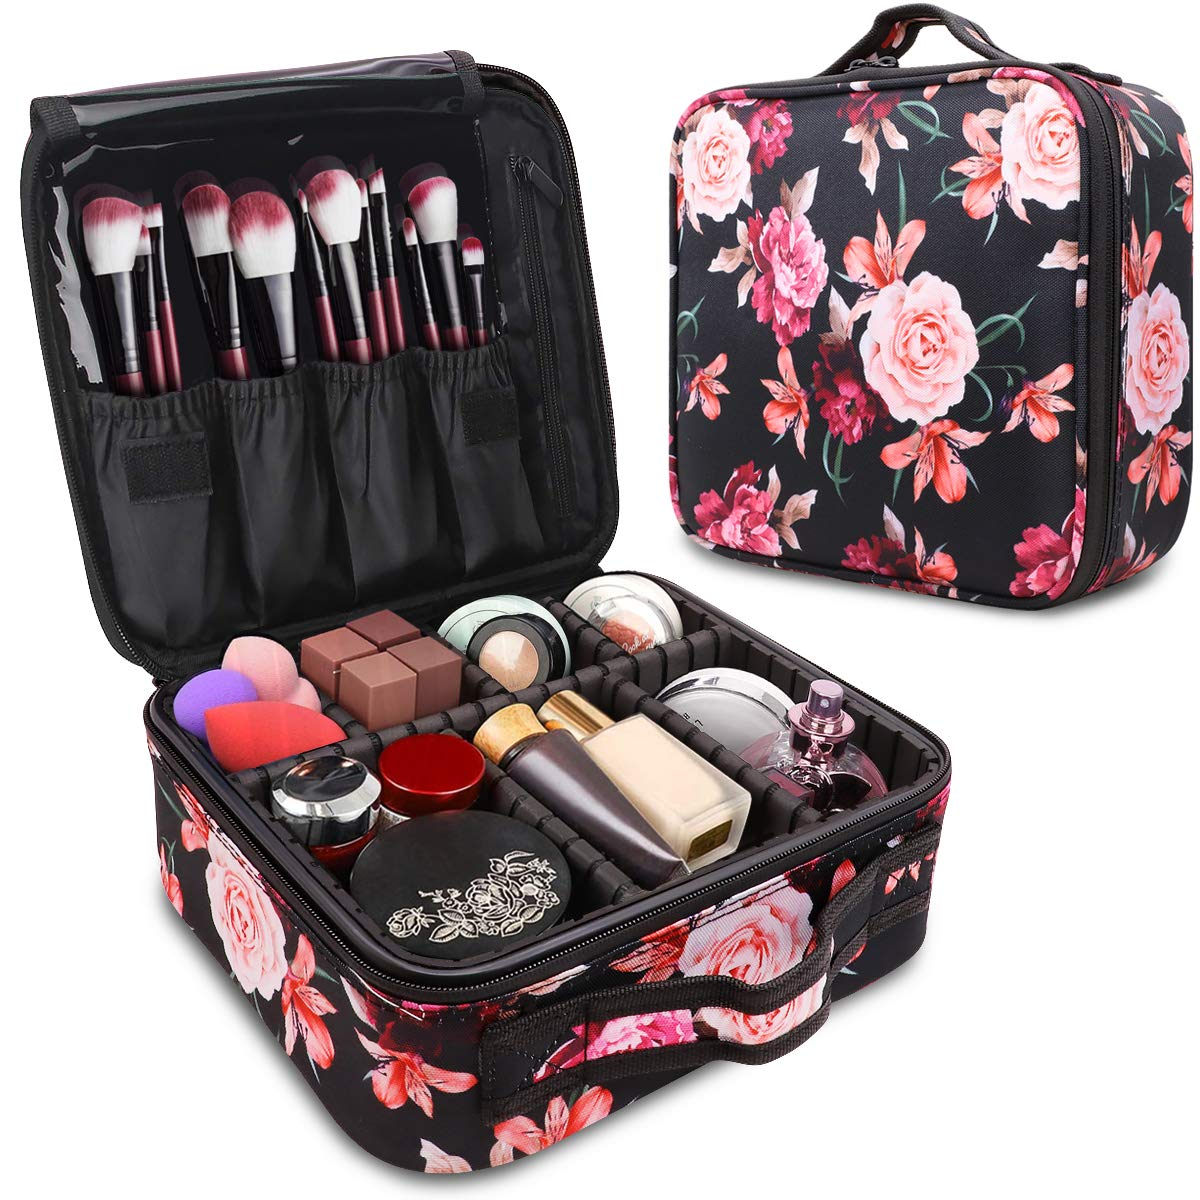 WAVEYU Makeup Case Bag Organizer,Travel Cases Cosmetic Flower Bag for Women Portable Toiletry Train Case with Adjustable Dividers Travel Accessories for Make Up Brushes Toiletry Jewelry, Black by WAVEYU